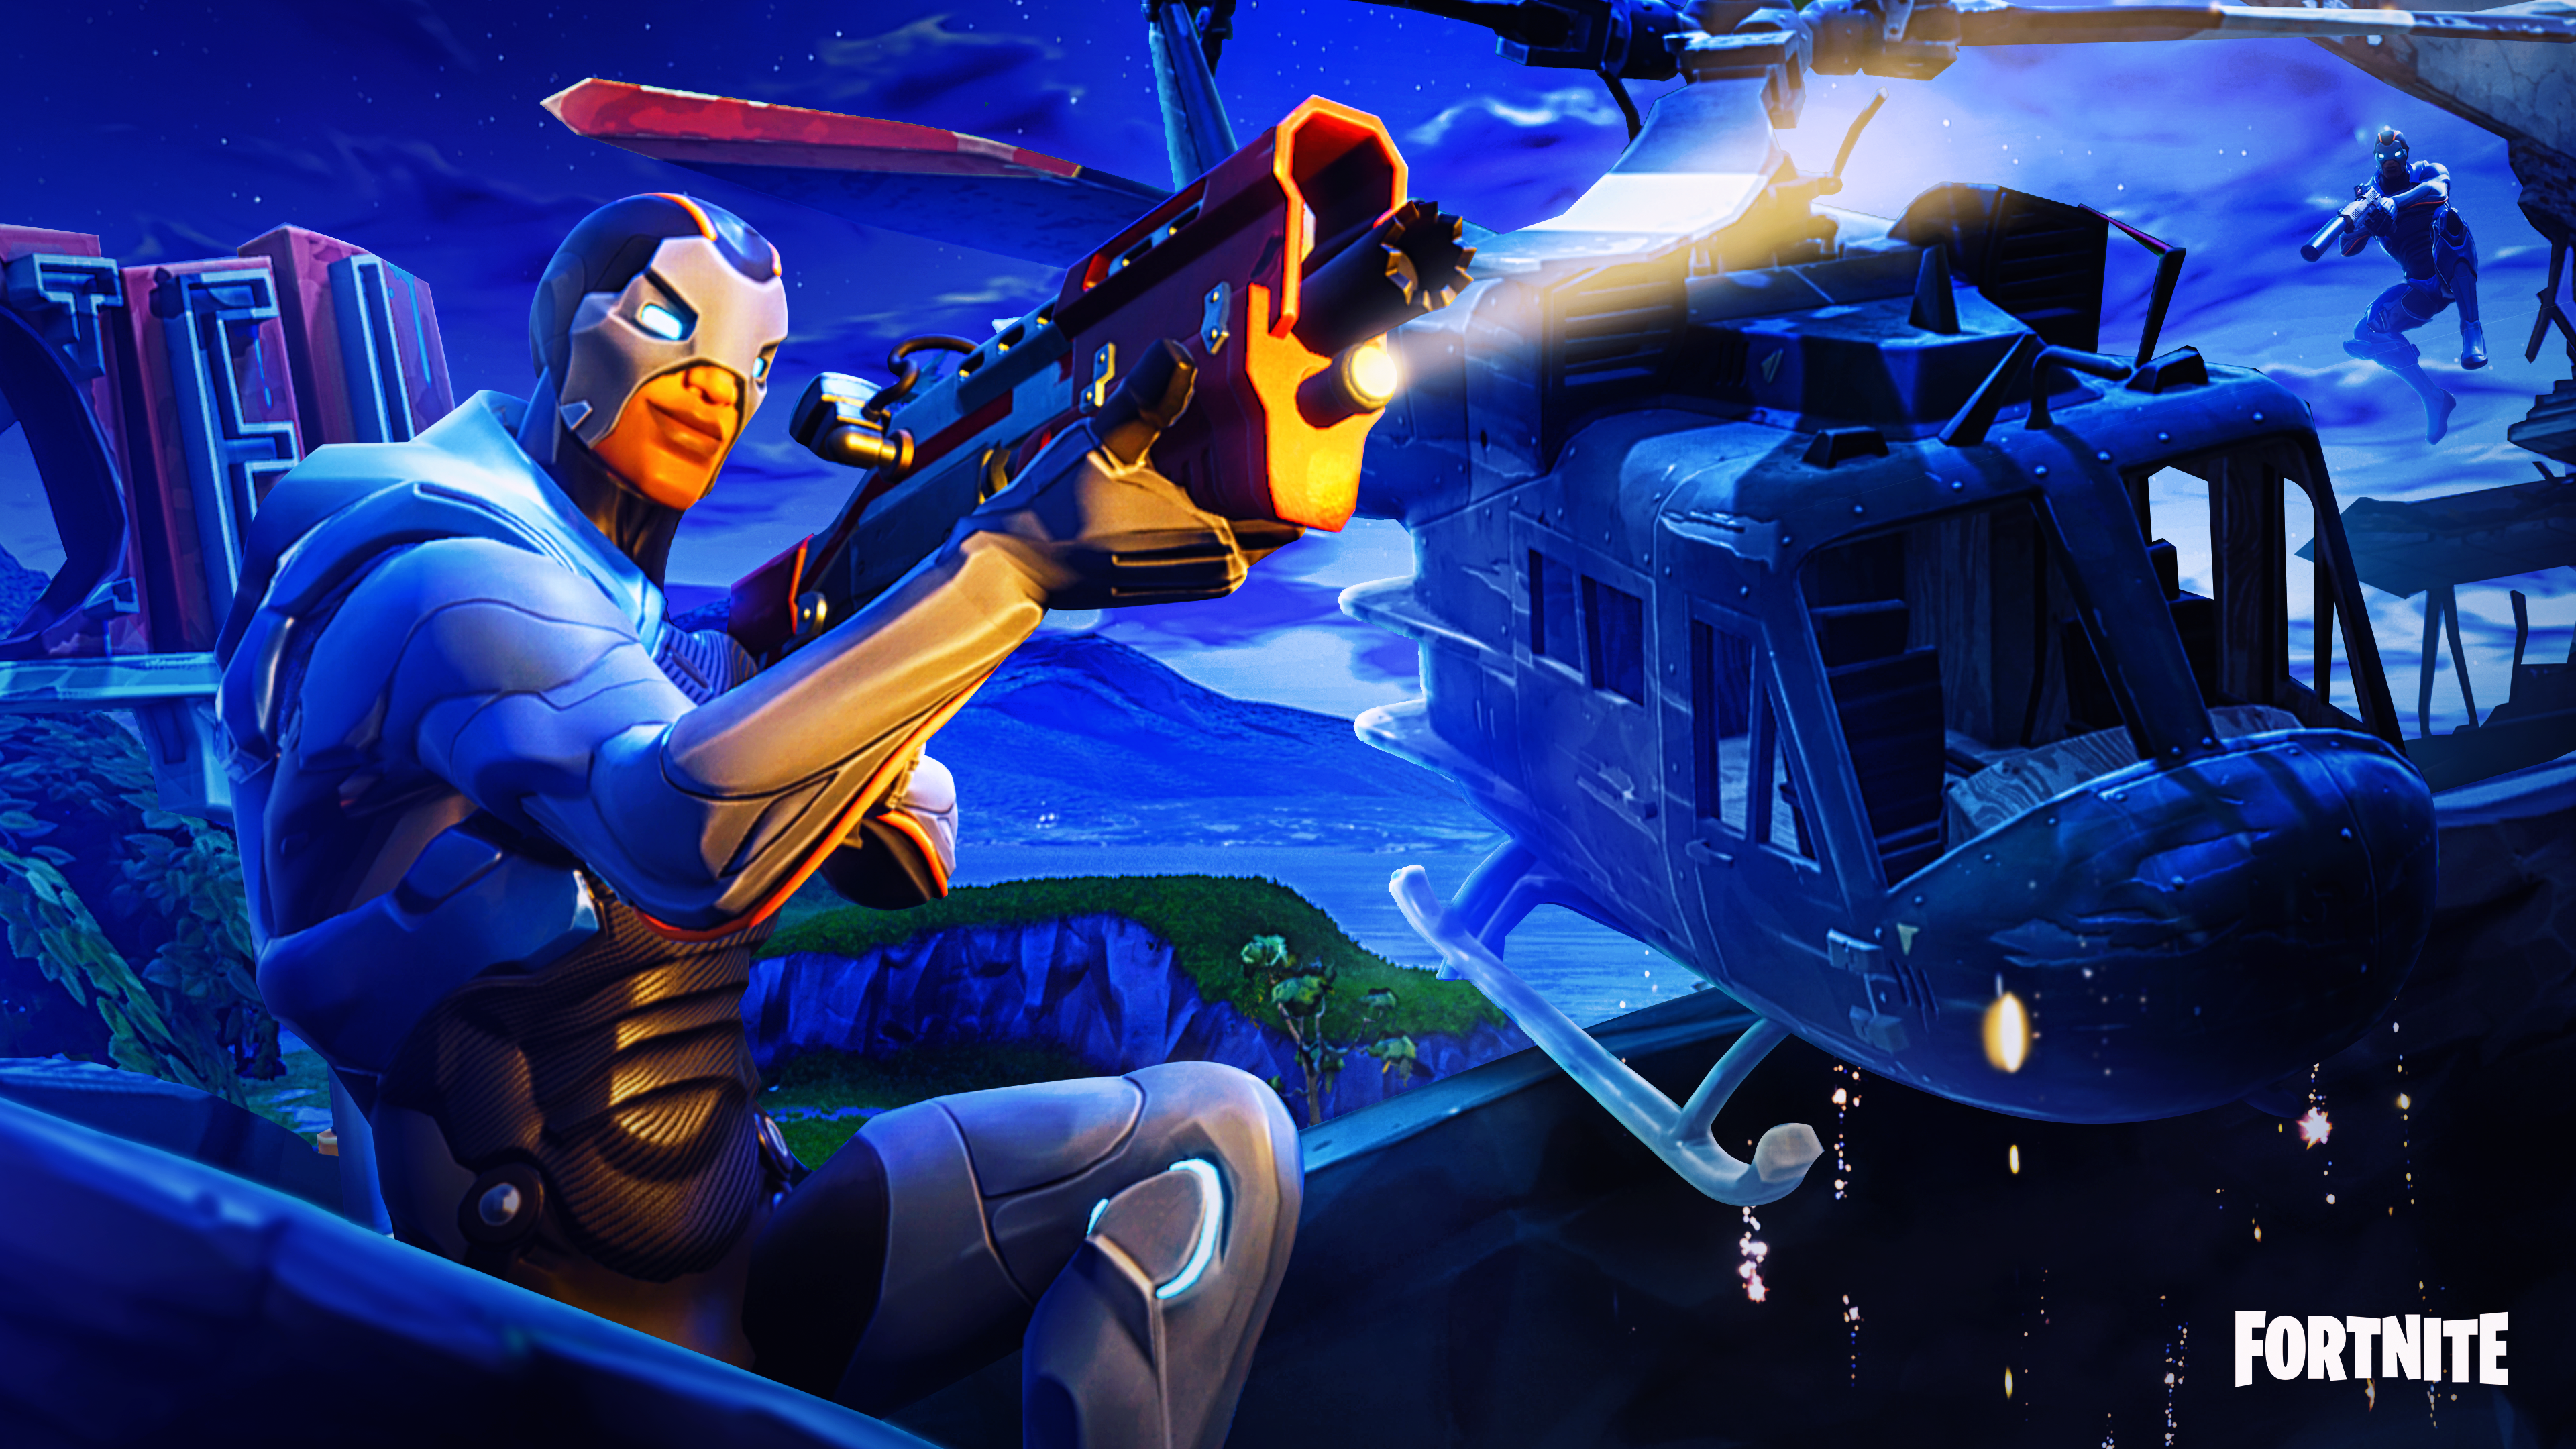 Season 4 Fortnite Skin 4k Ultra Hd Wallpaper Hintergrund